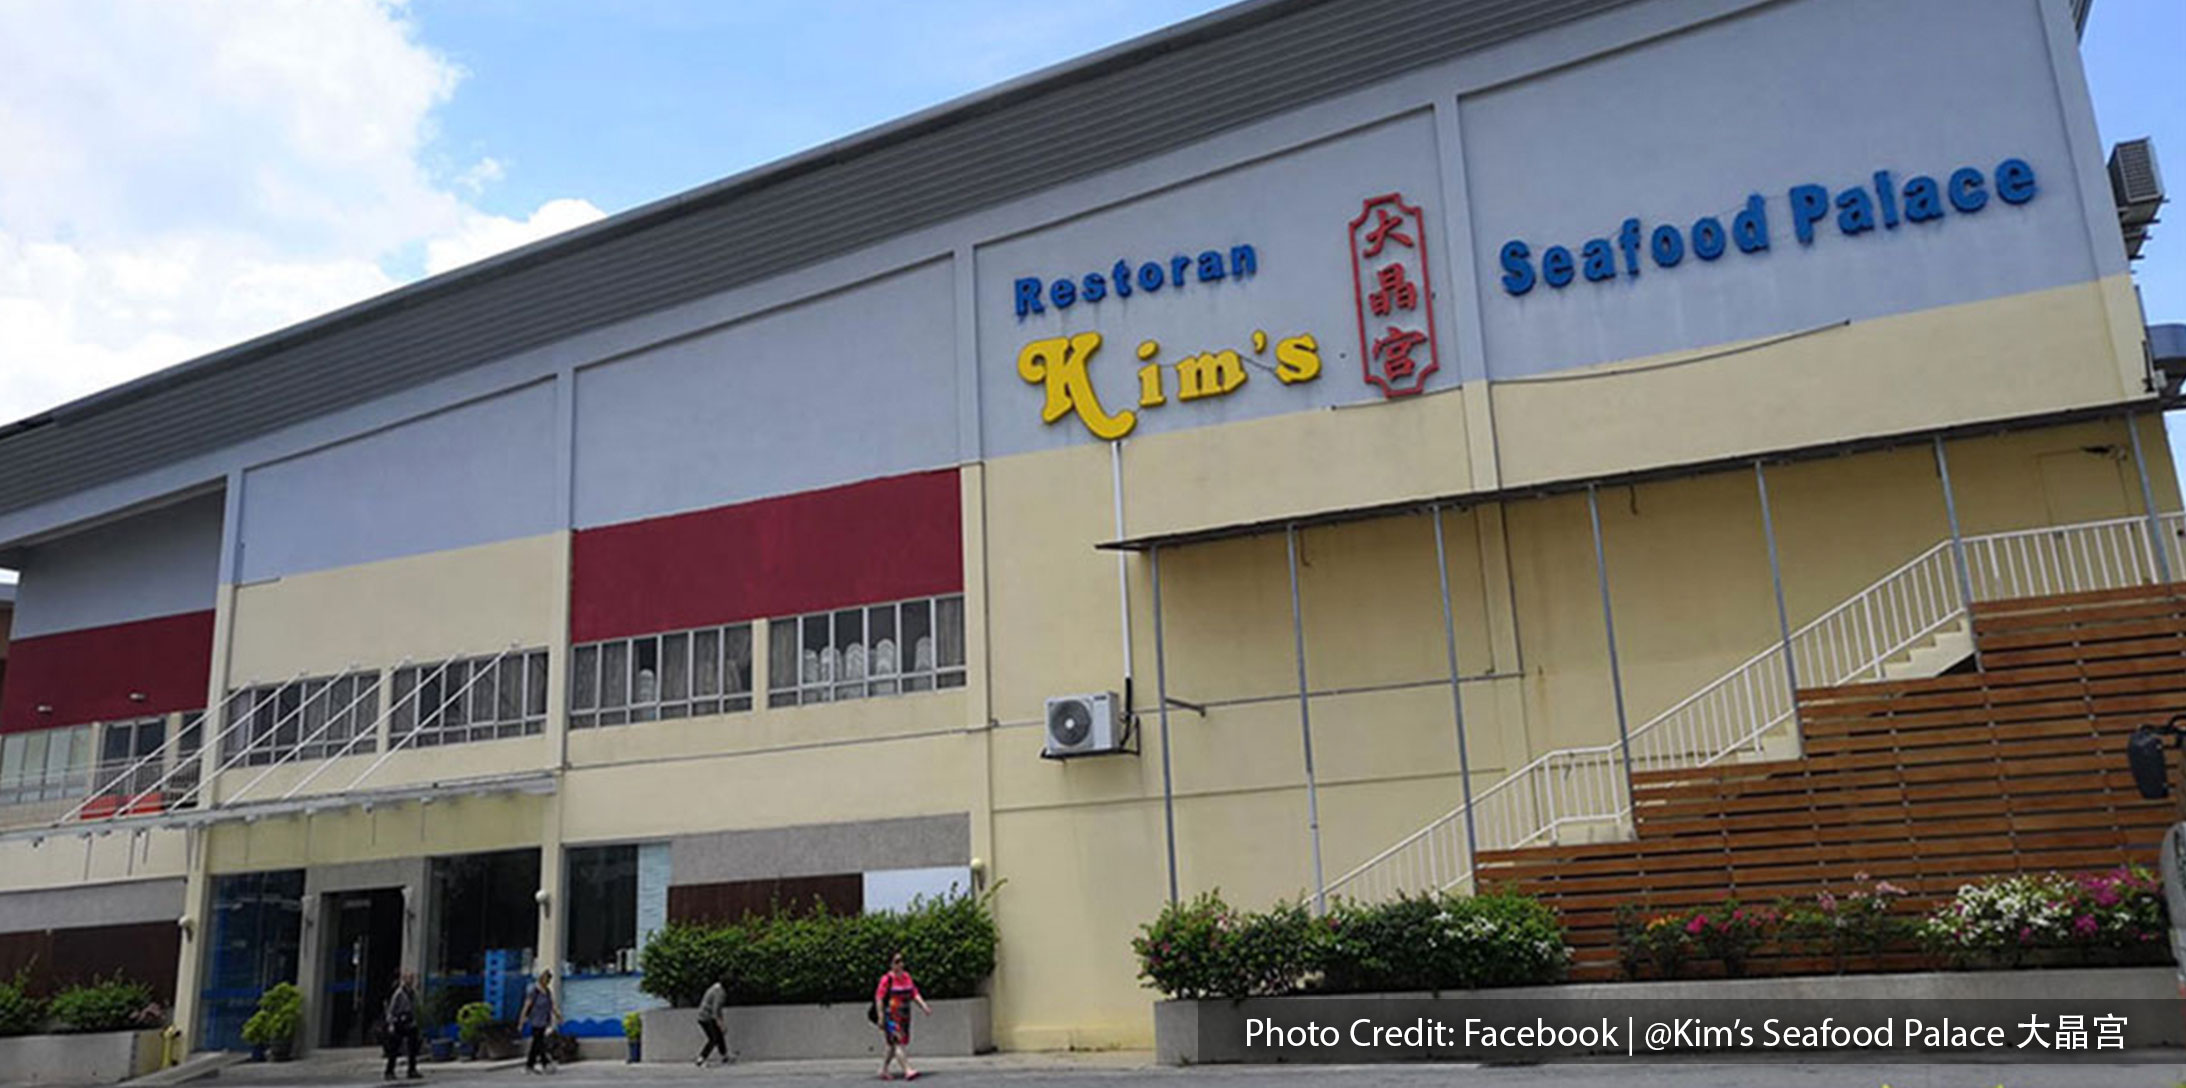 Front View Restaurant building of Kim's Seafood Palace, Port Dickson